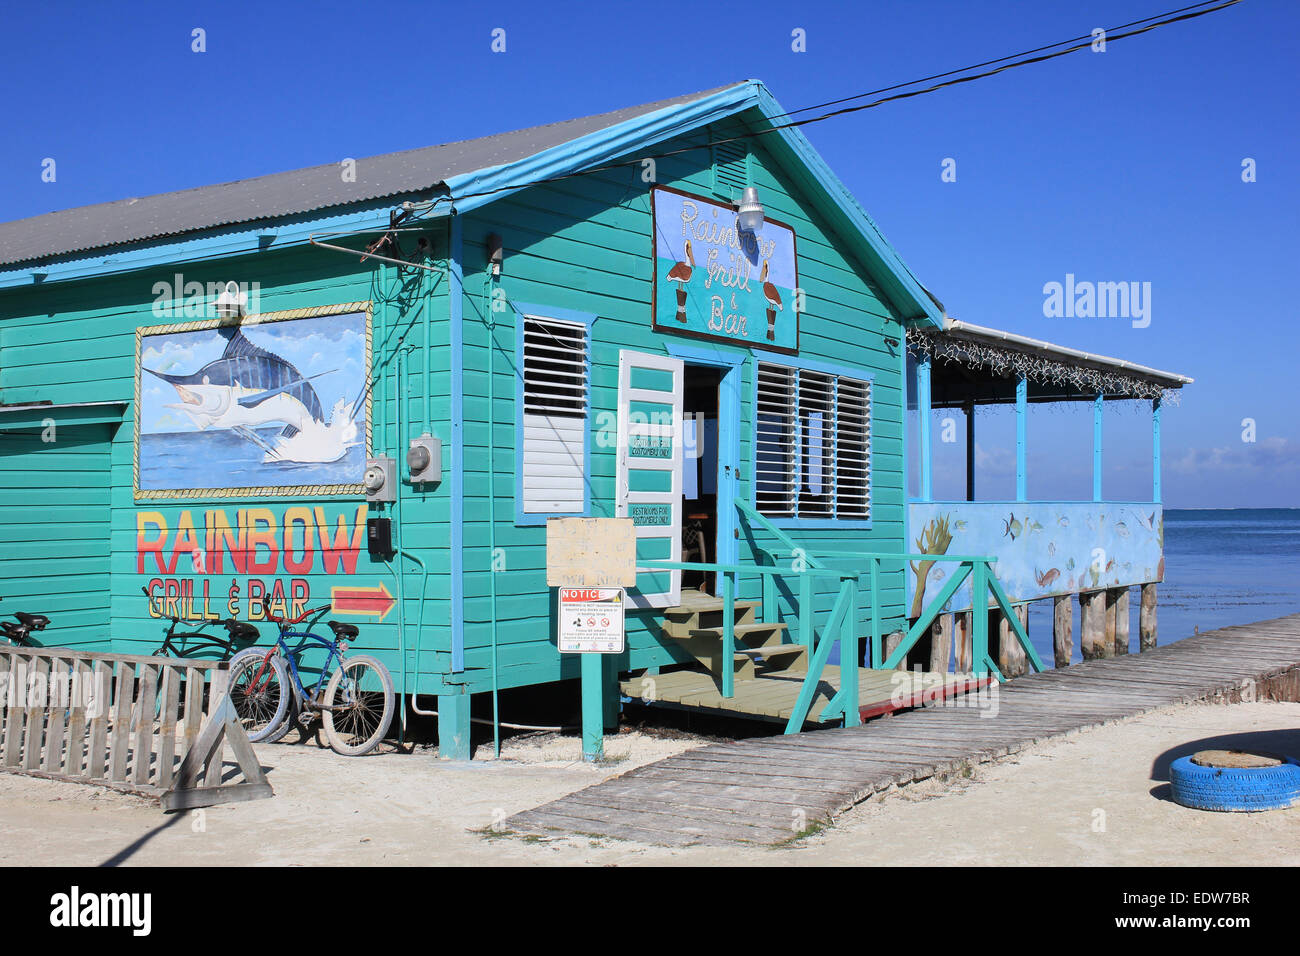 Rainbow Bar And Grill On Caye Caulker, Belize - Stock Image